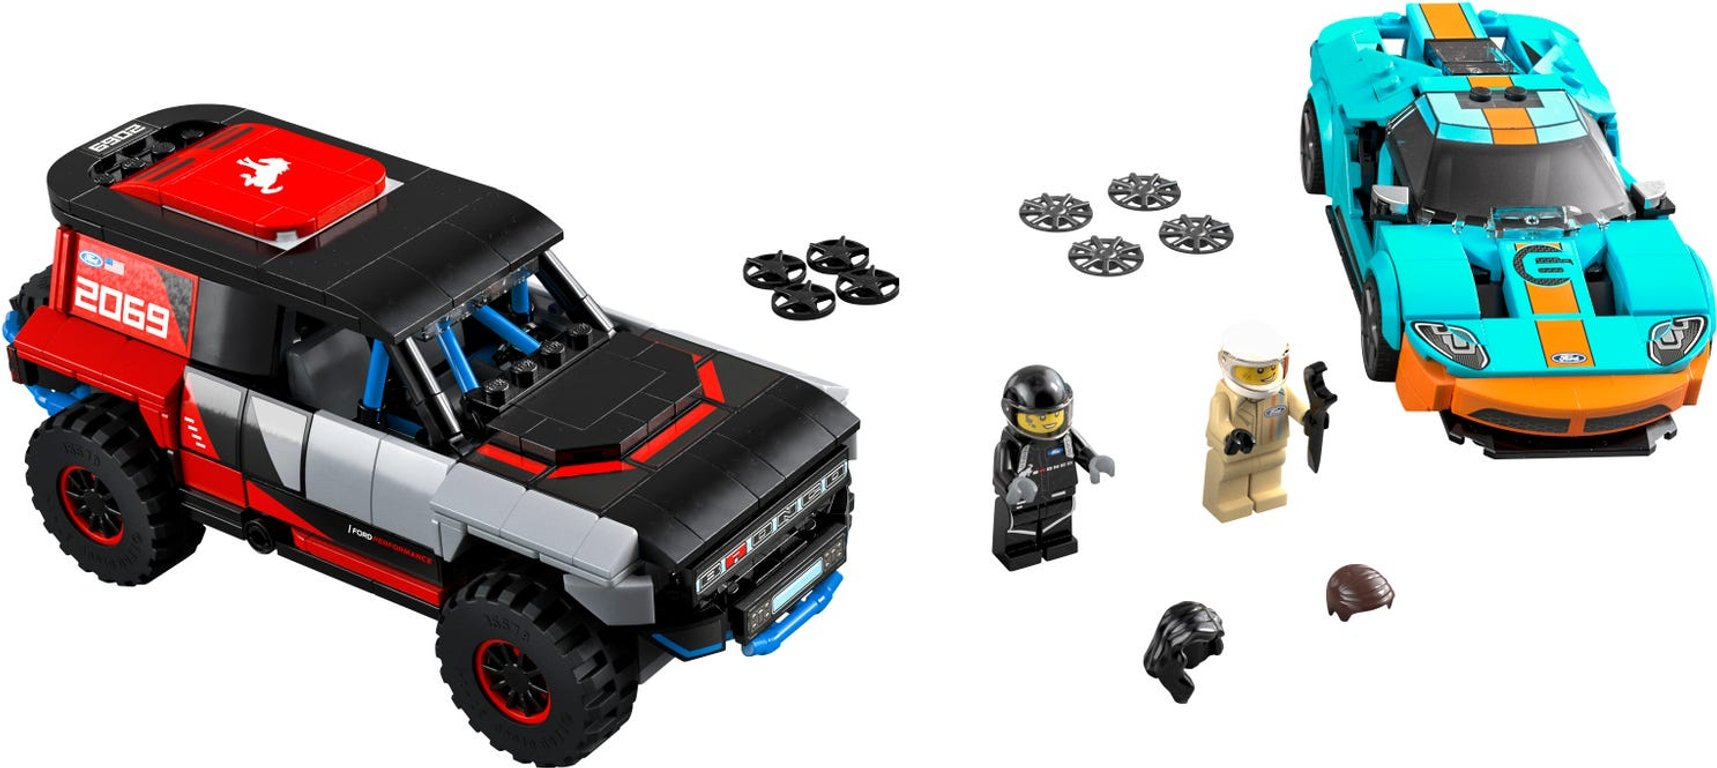 LEGO® Speed Champions Ford GT Heritage Edition and Bronco R components